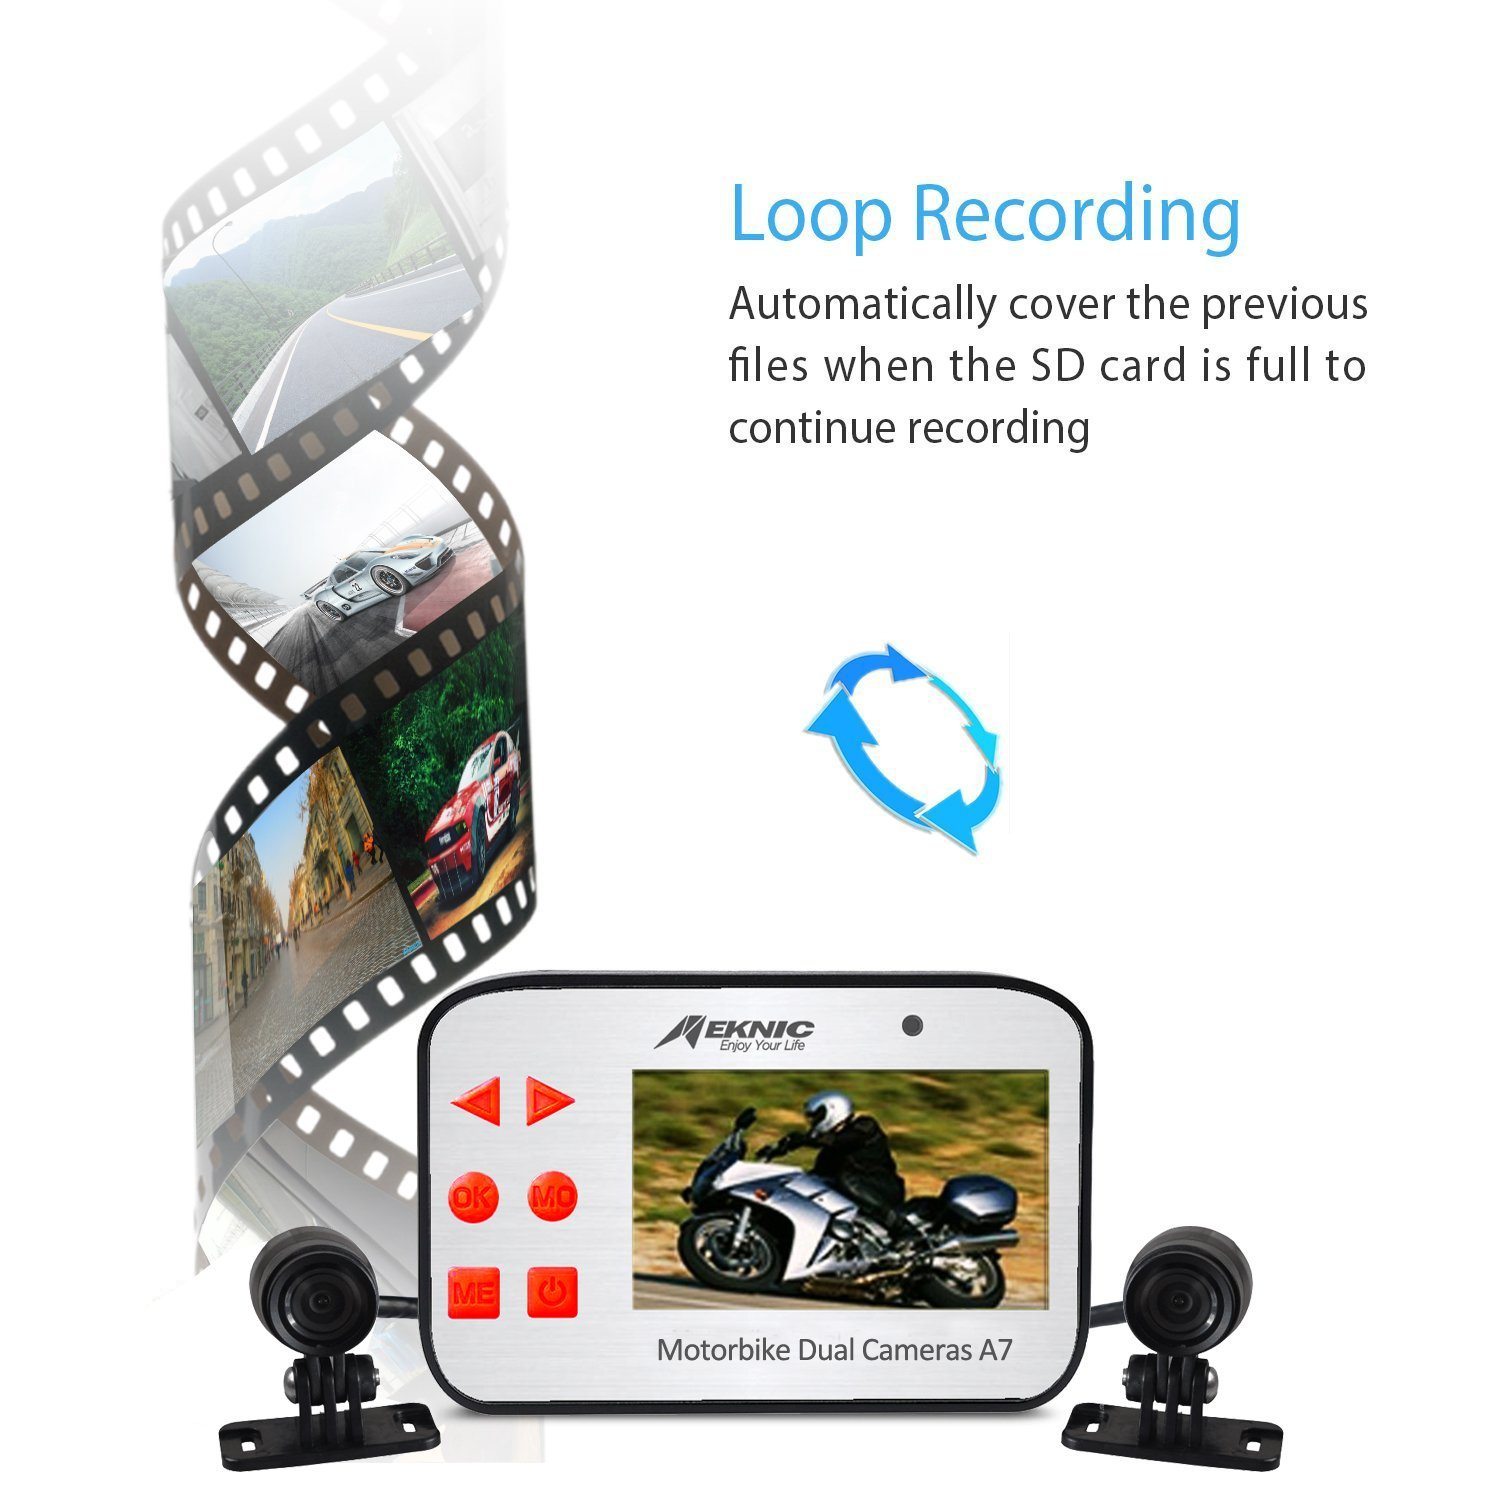 Ltd A7001JP Waterproof Action Camera Motorcycle Driving Recorder,Unique Gift Idea Supremevalue International CO Dual Lens 1080P Video Security Motorbike Camera System with 2.7 Screen Meknic A7 Motorcycle Camera Motorcycle Dash Camera